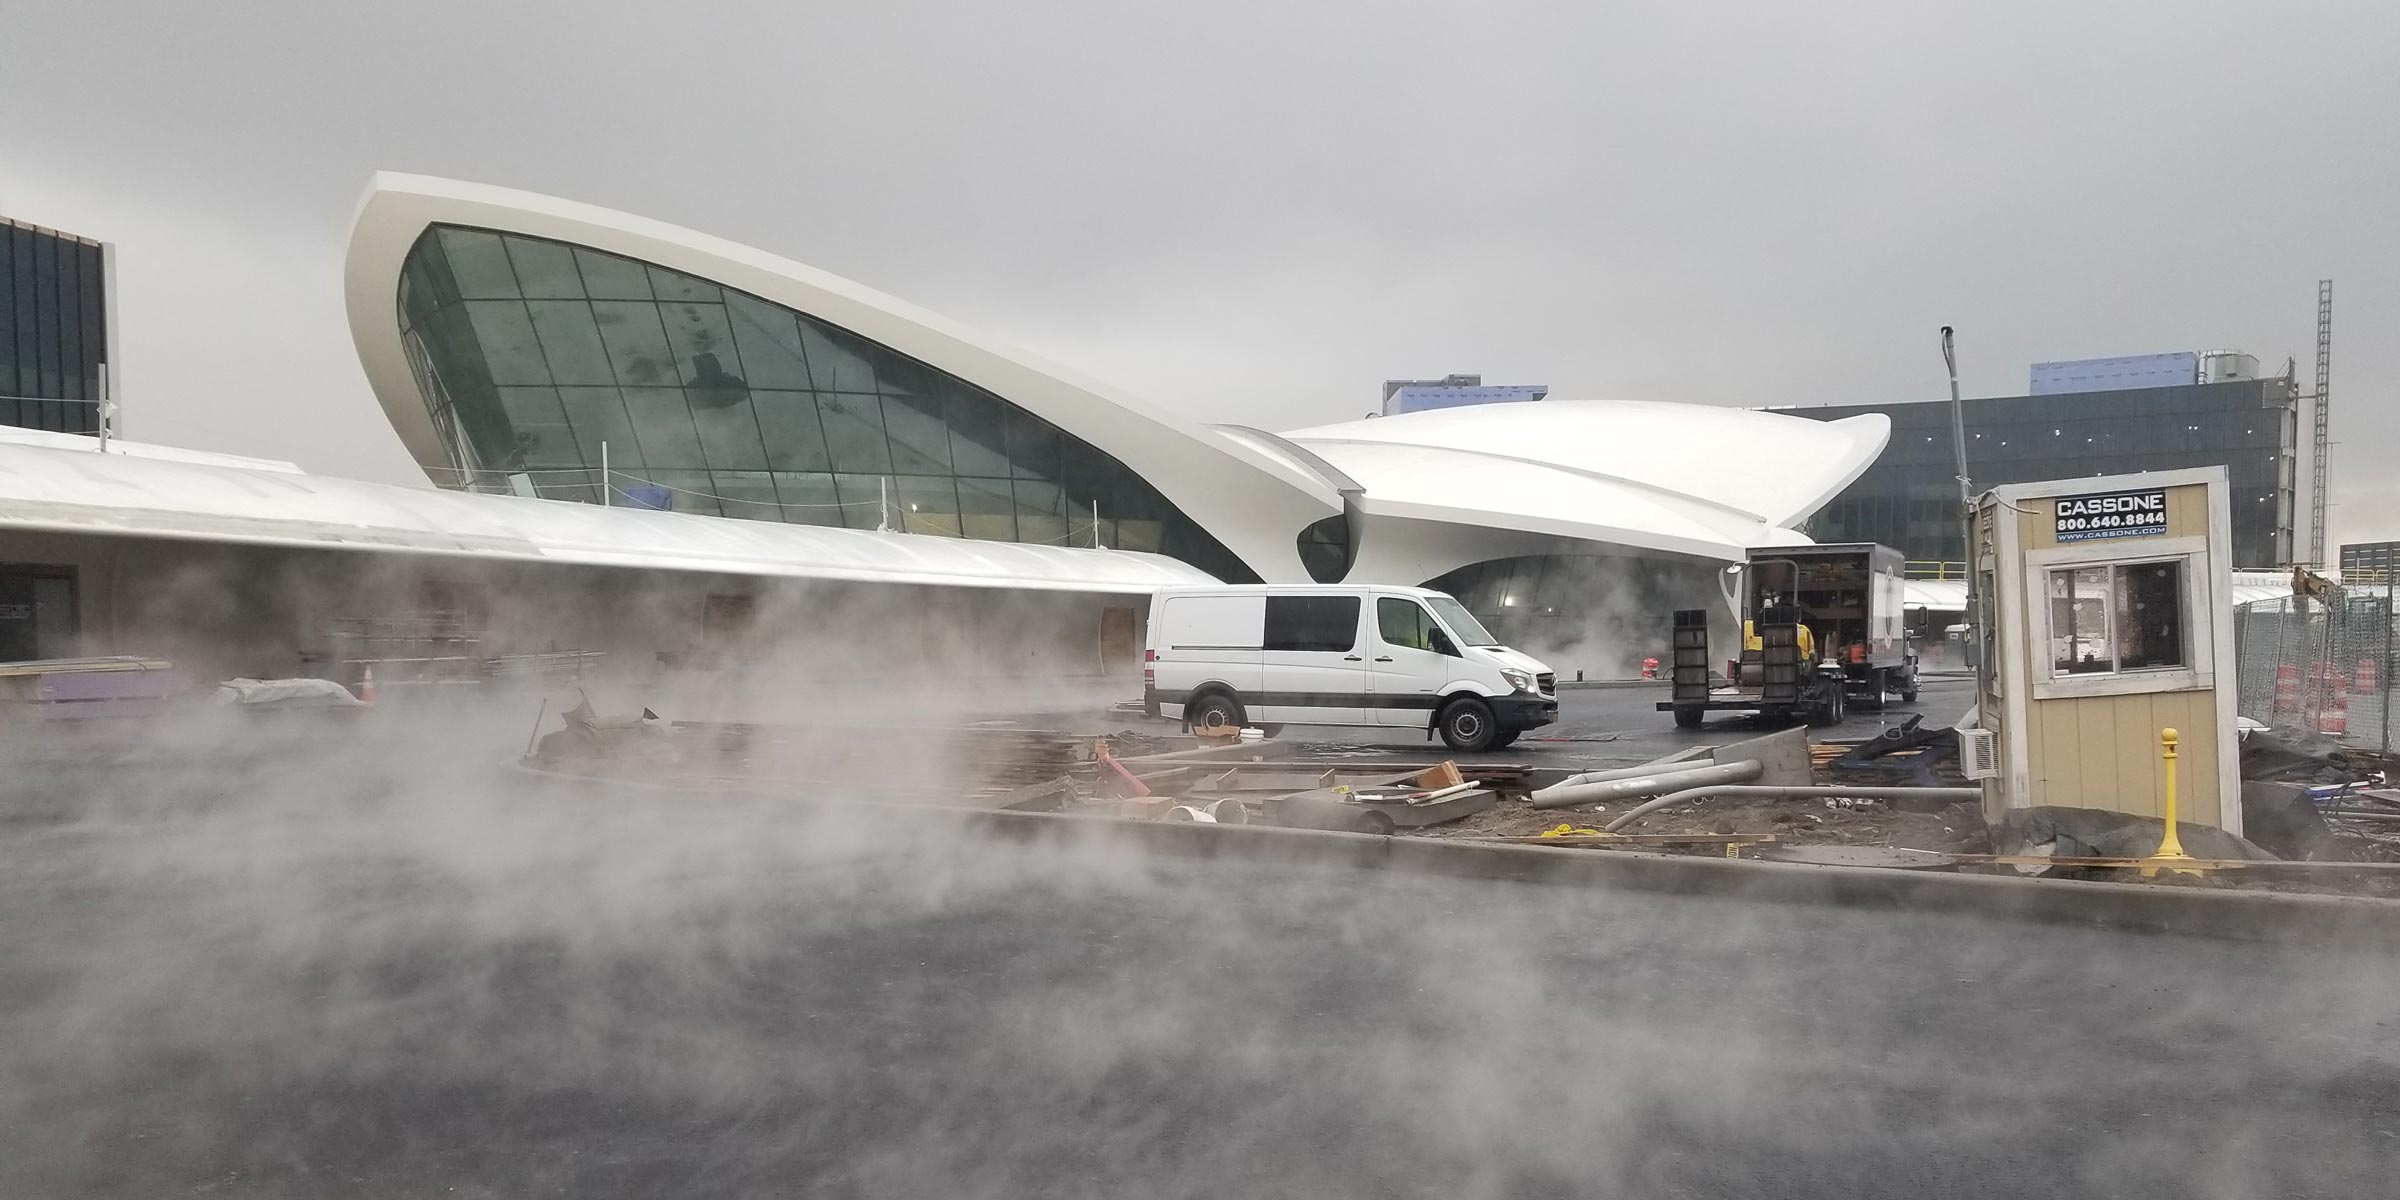 TWA Hotel Construction